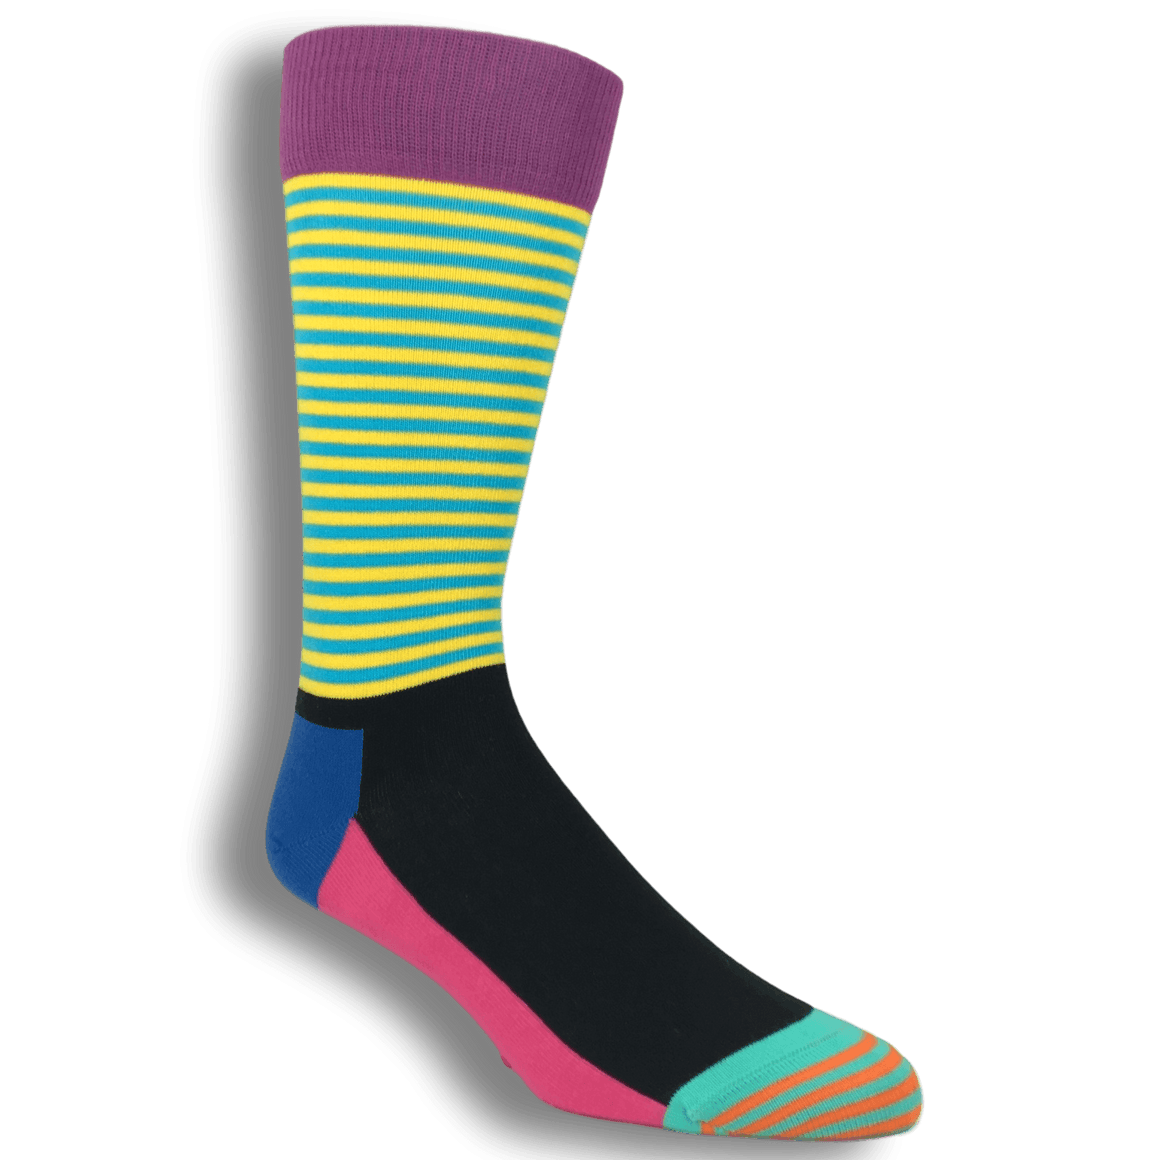 Socks - Green, Pink, And Blue Half Stripe Socks By Happy Socks